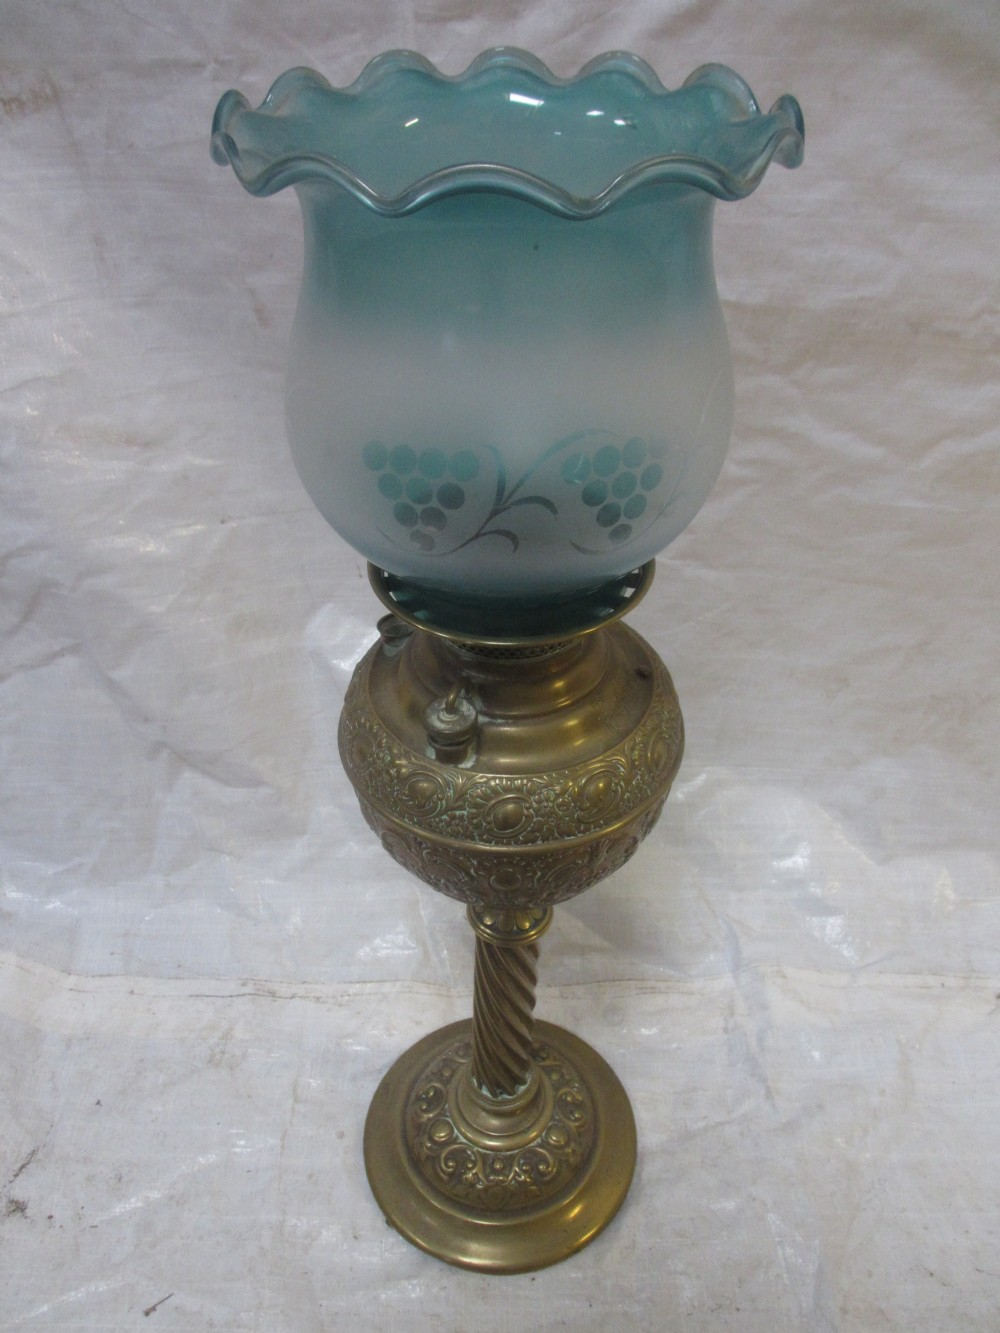 19th century brass embossed oil lamp with tinted glass shade